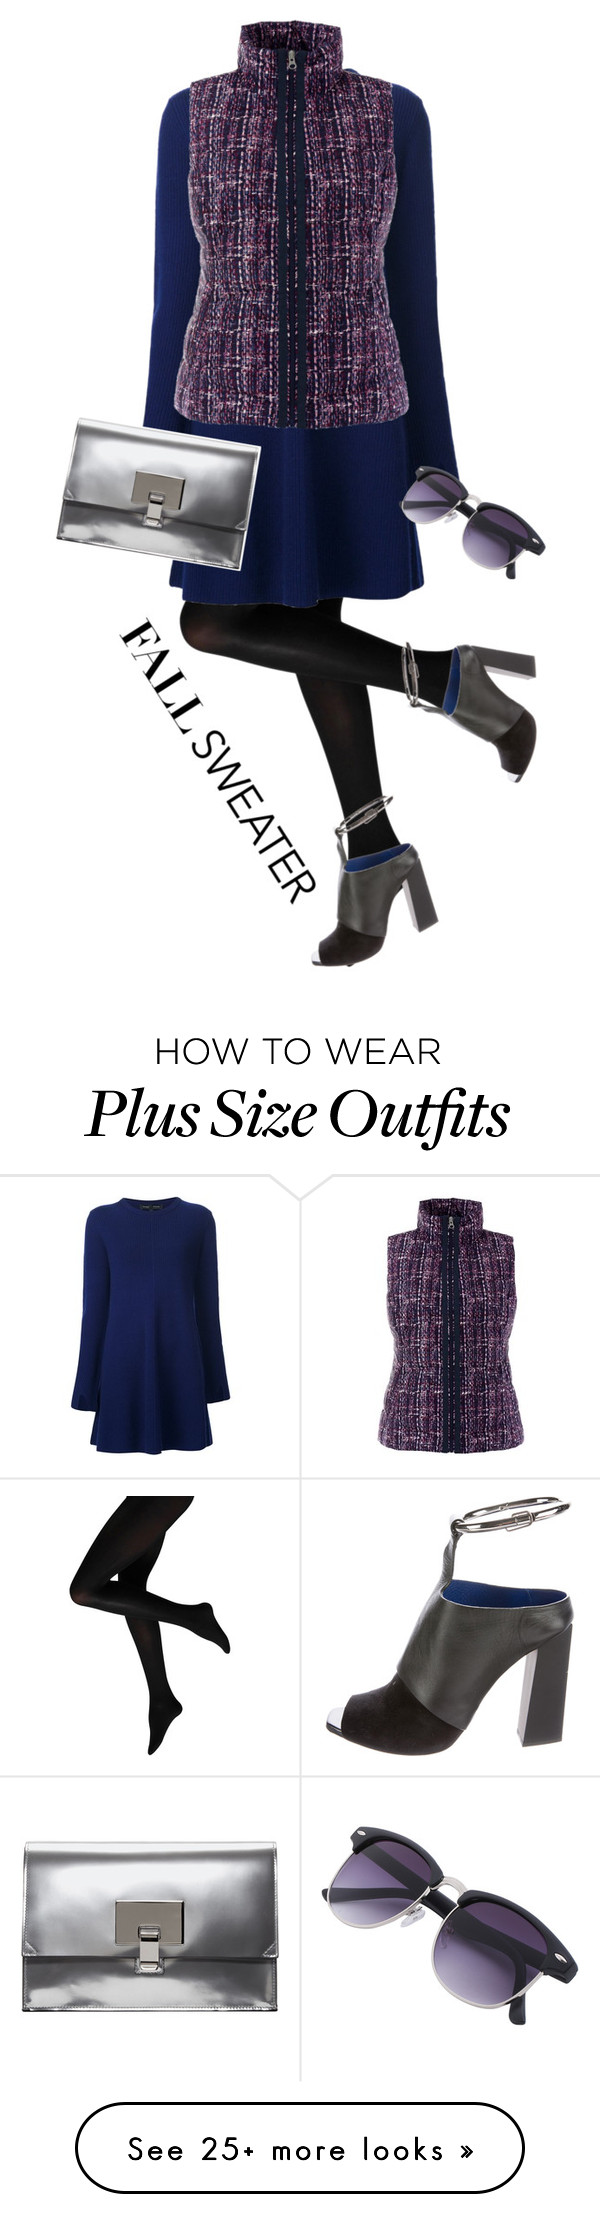 """""""Blue Proenza Fall Sweater"""" by nisak-tf on Polyvore featuring Proenza Schouler, Lands' End, contestentry and fallsweaters"""